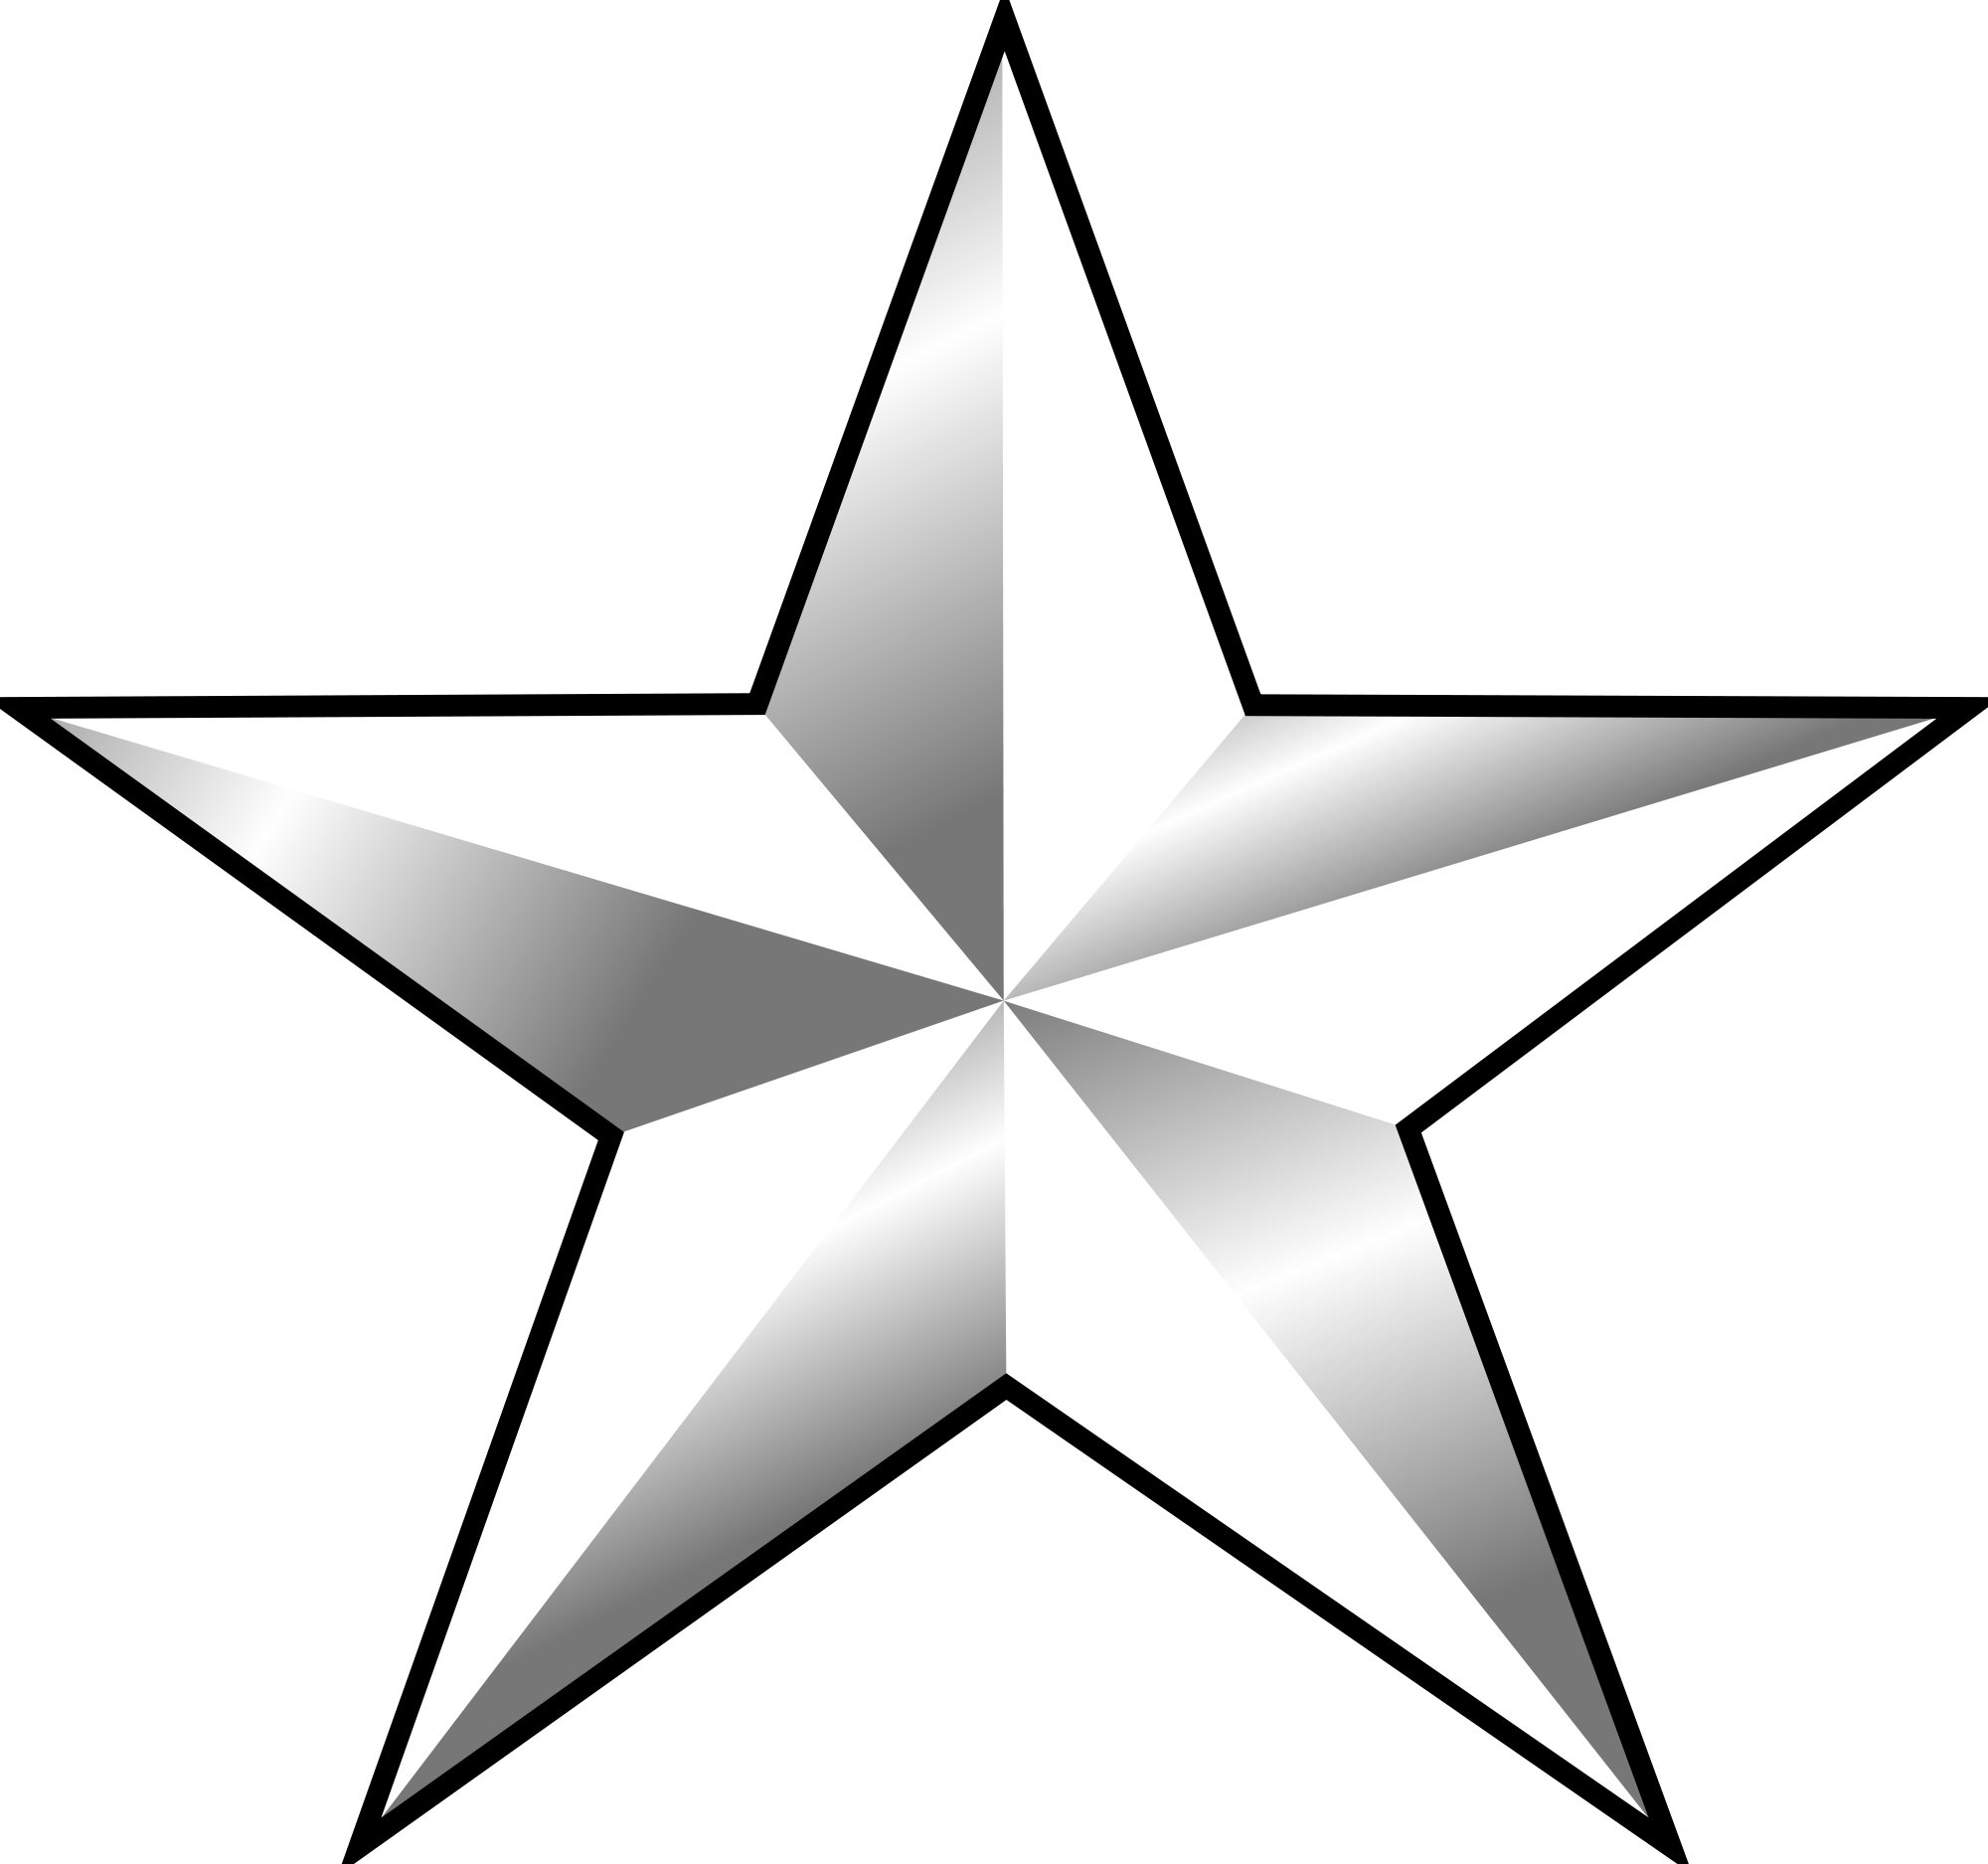 Texas star clipart png vector library Tete drole png 9 » PNG Image vector library